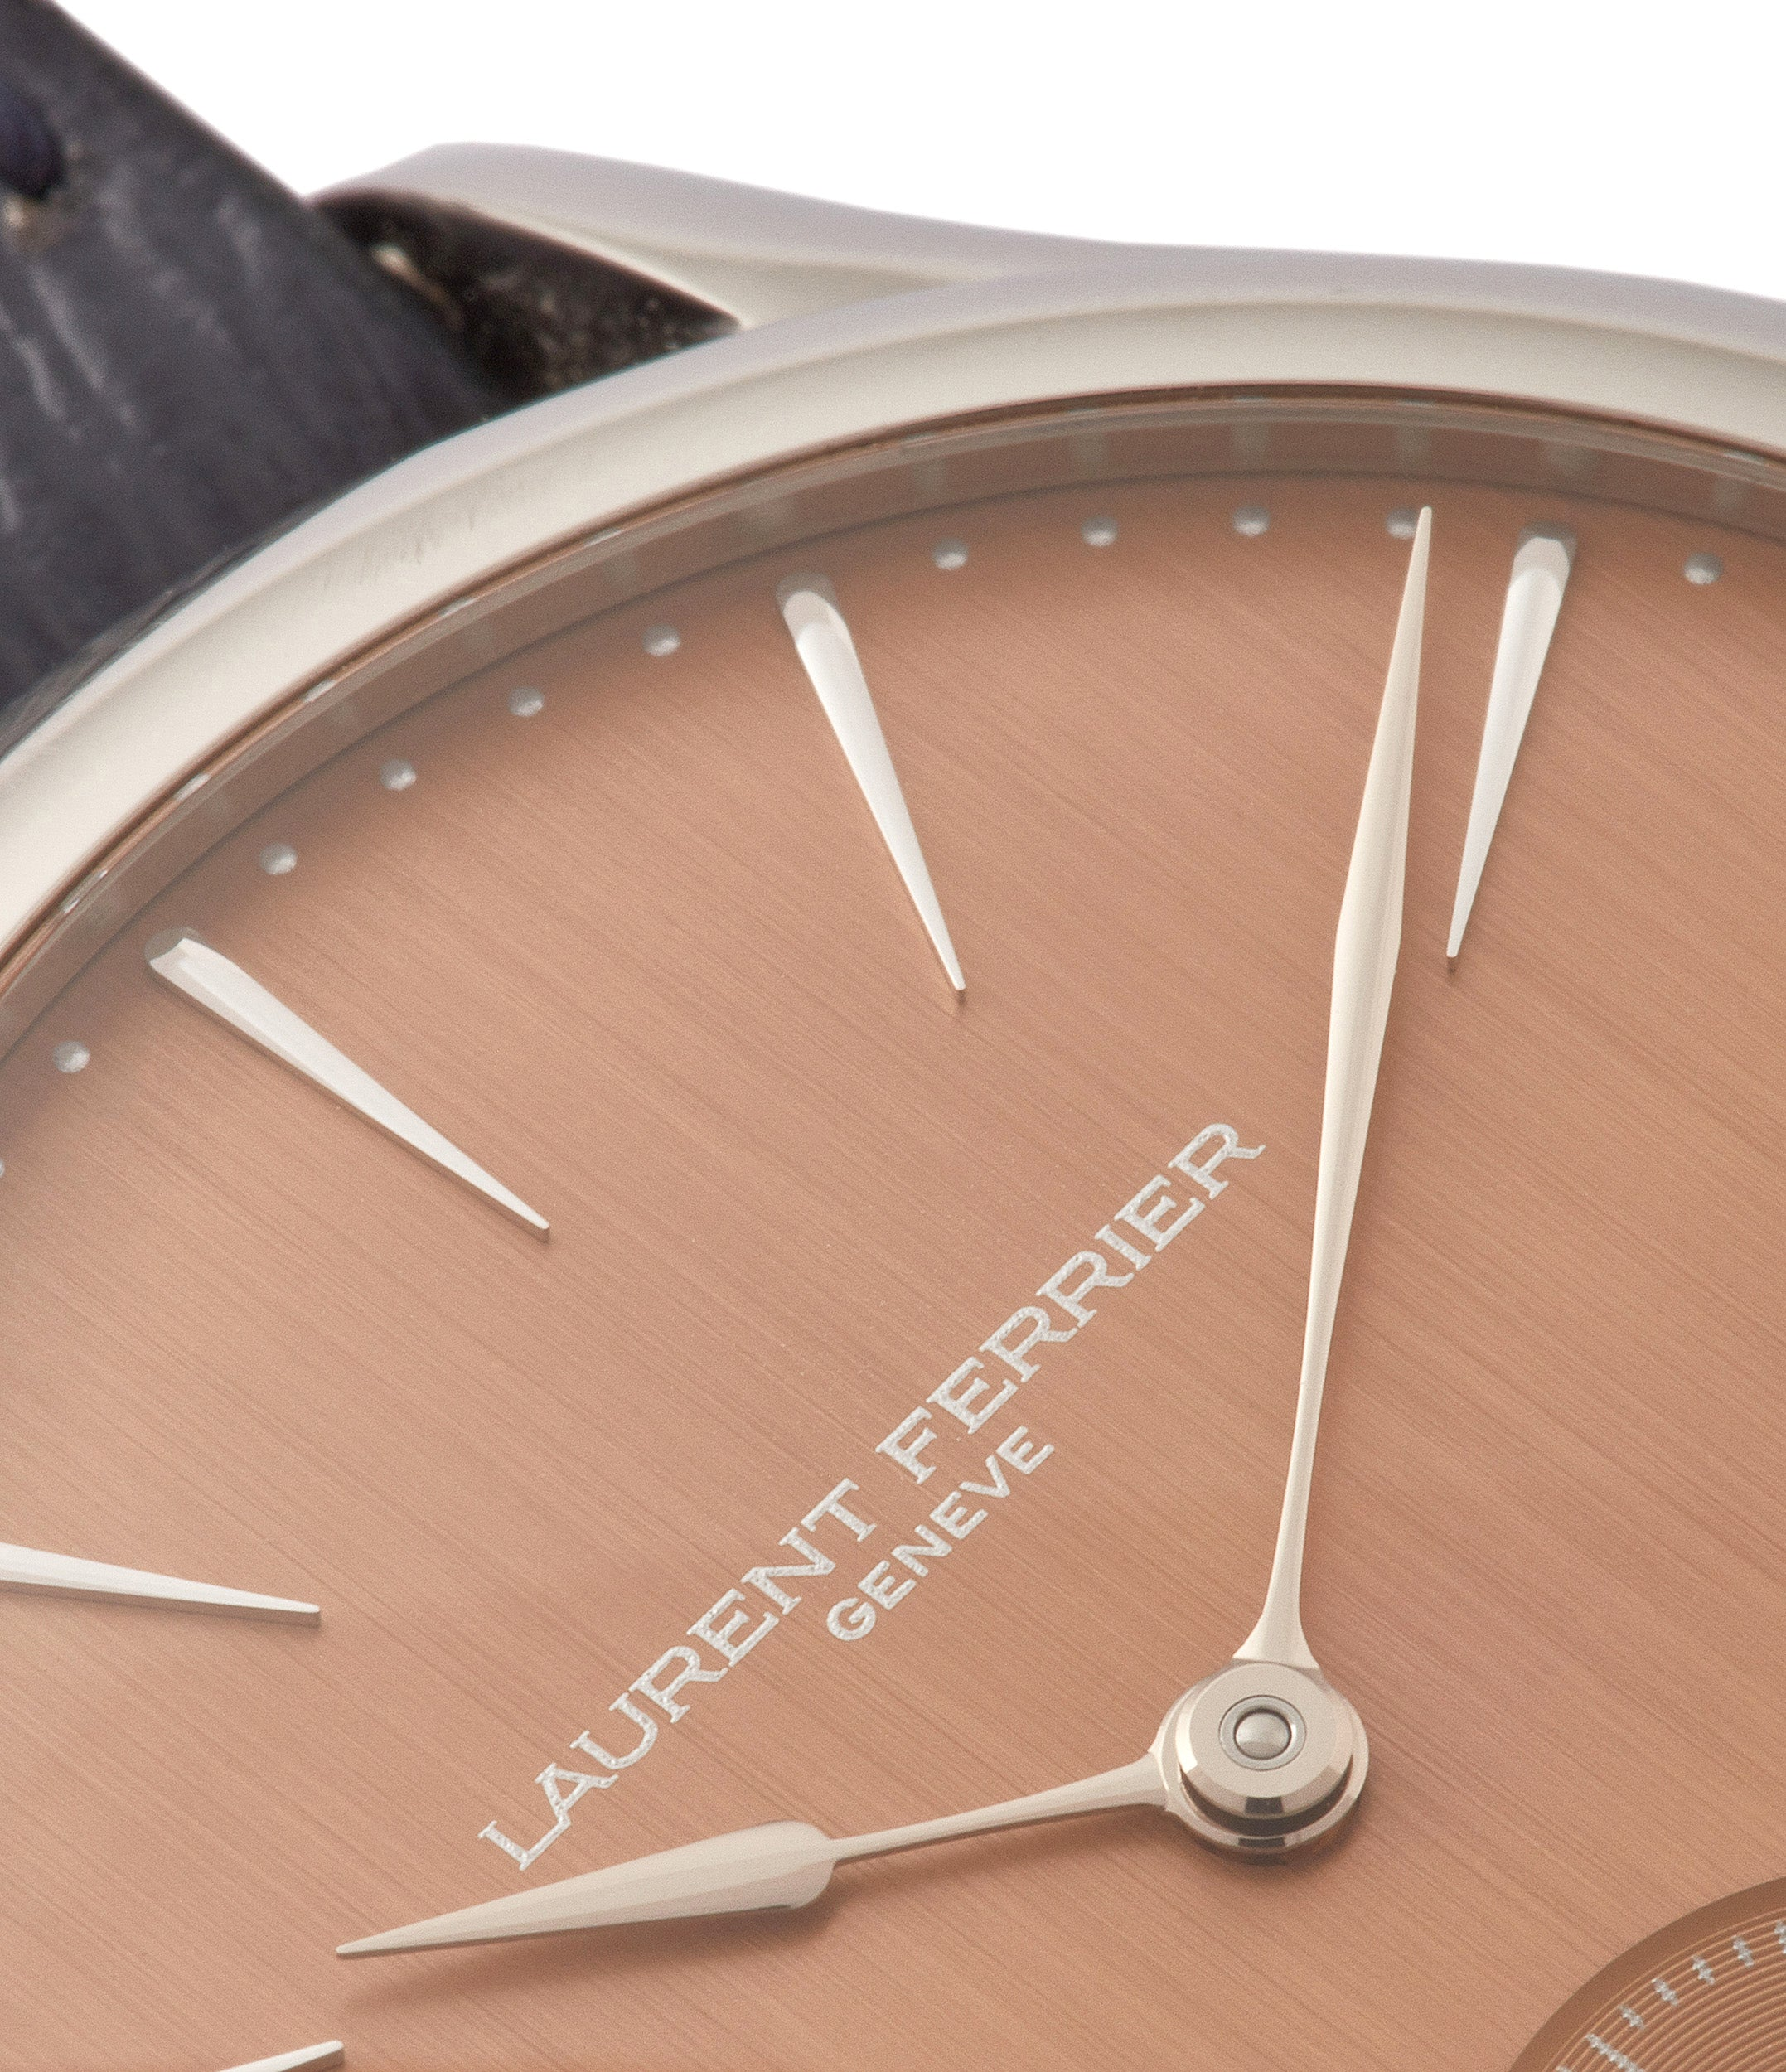 brushed salmon dial Laurent Ferrier Galet Micro-rotor FBN 229.01 steel rare watch for sale online at A Collected Man London approved re-seller of independent watchmakers